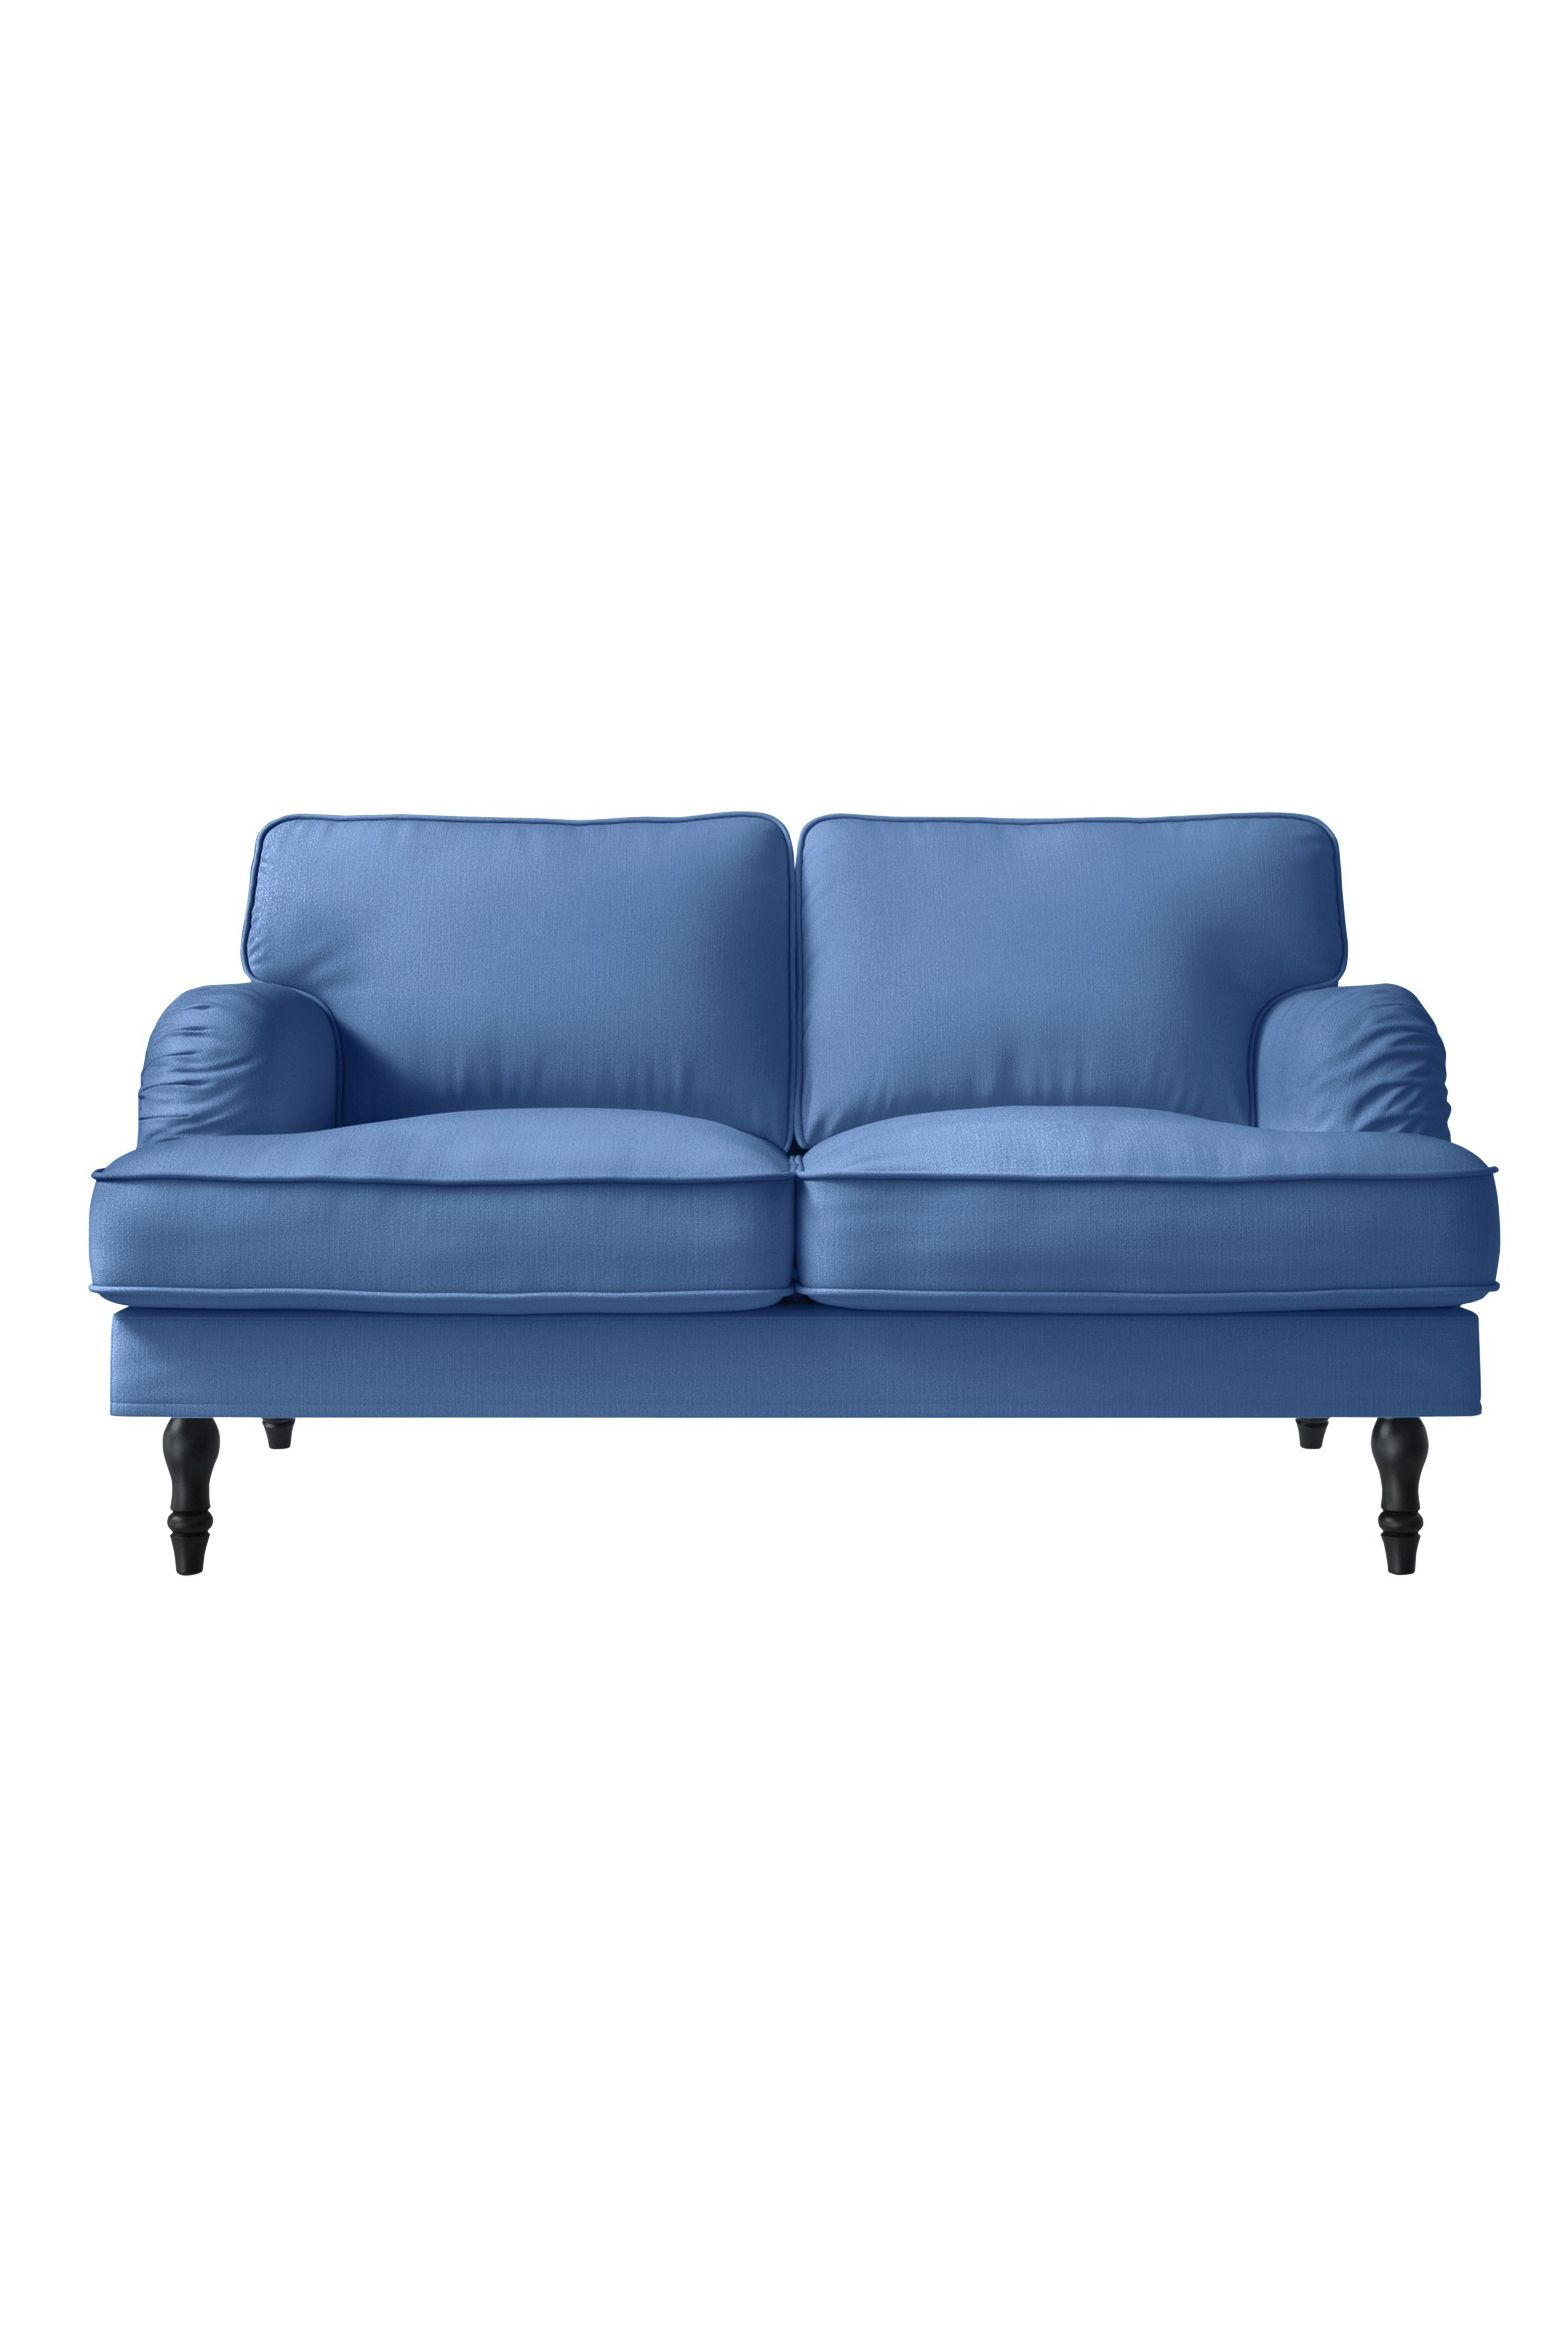 13 Best Cheap Sofas Under 3000 Top Inexpensive Couches